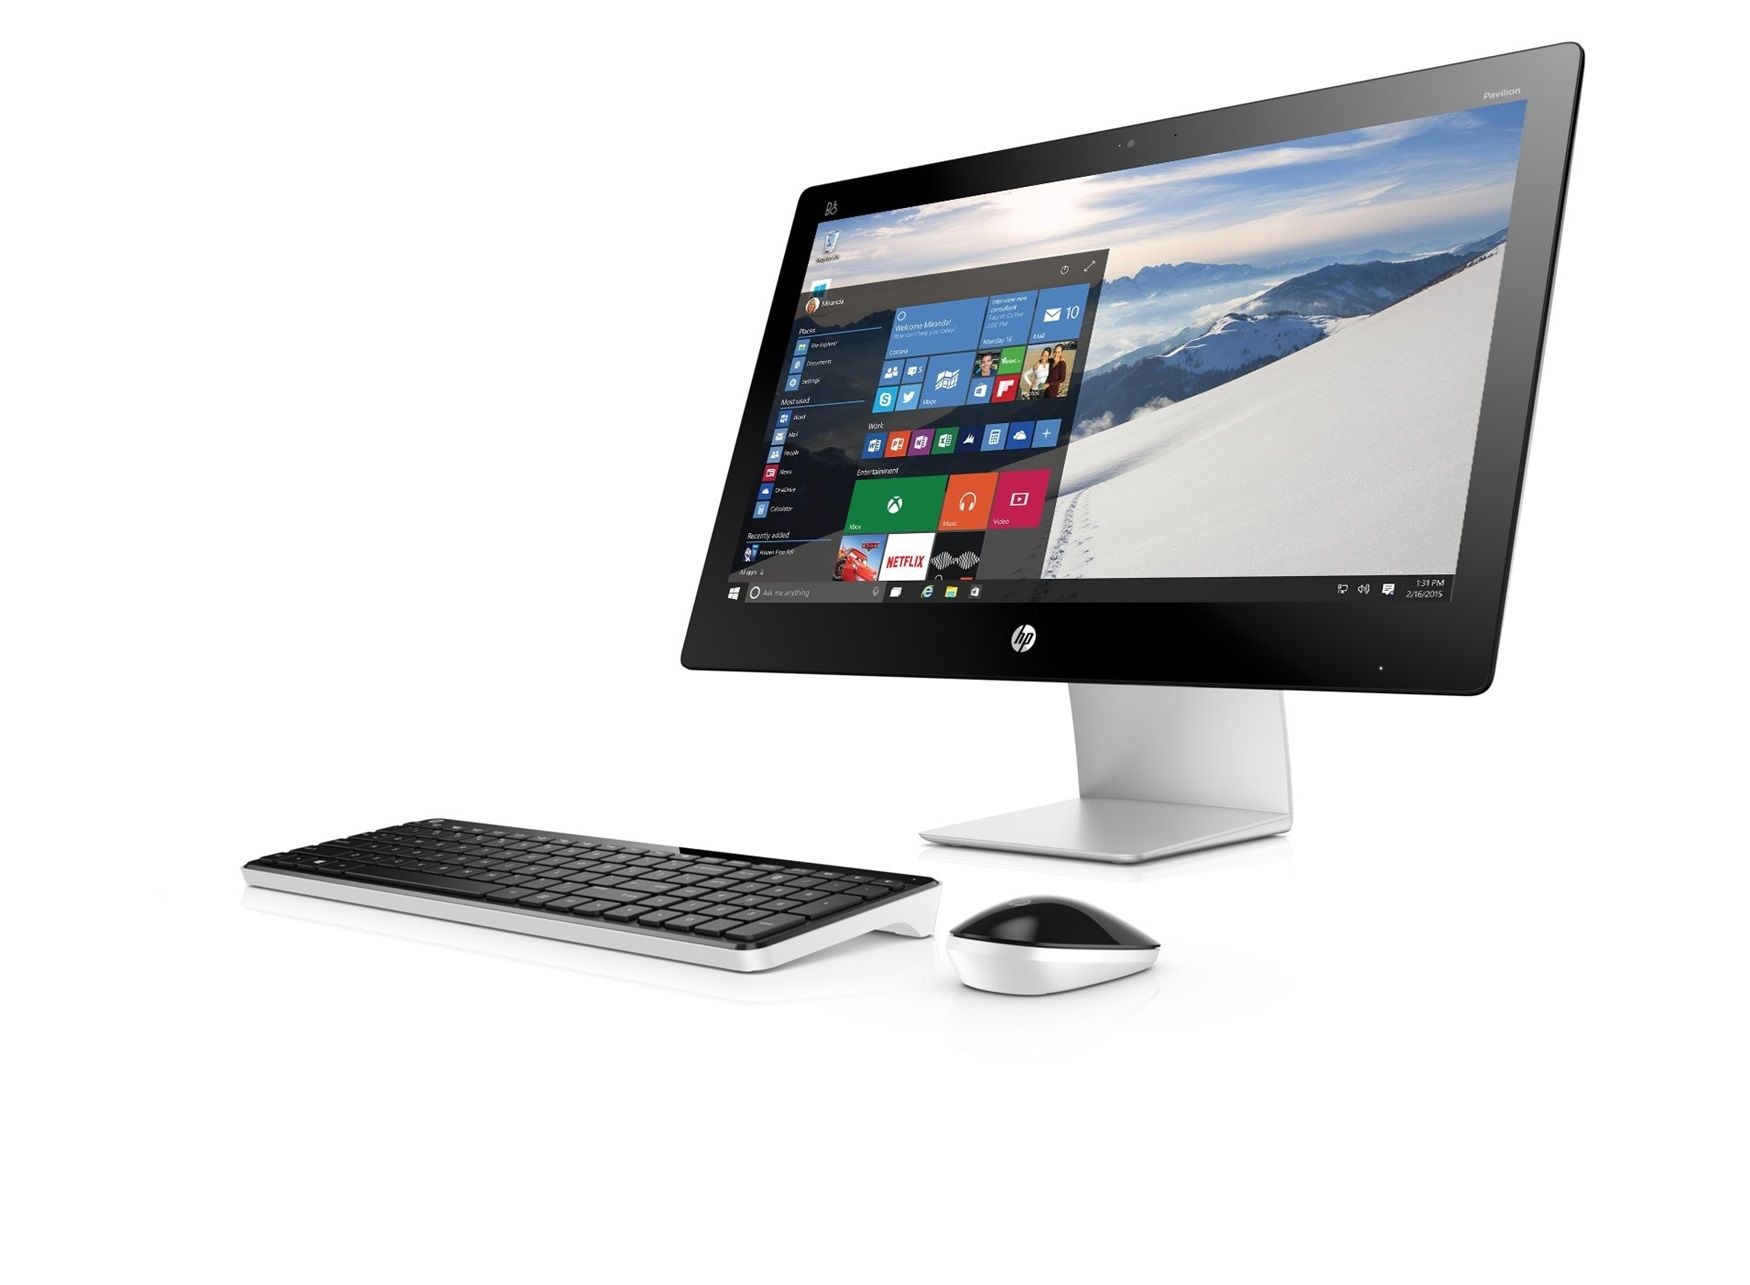 HP Pavilion 23-q150na All-in-One - HP Store UK   Home Office ...